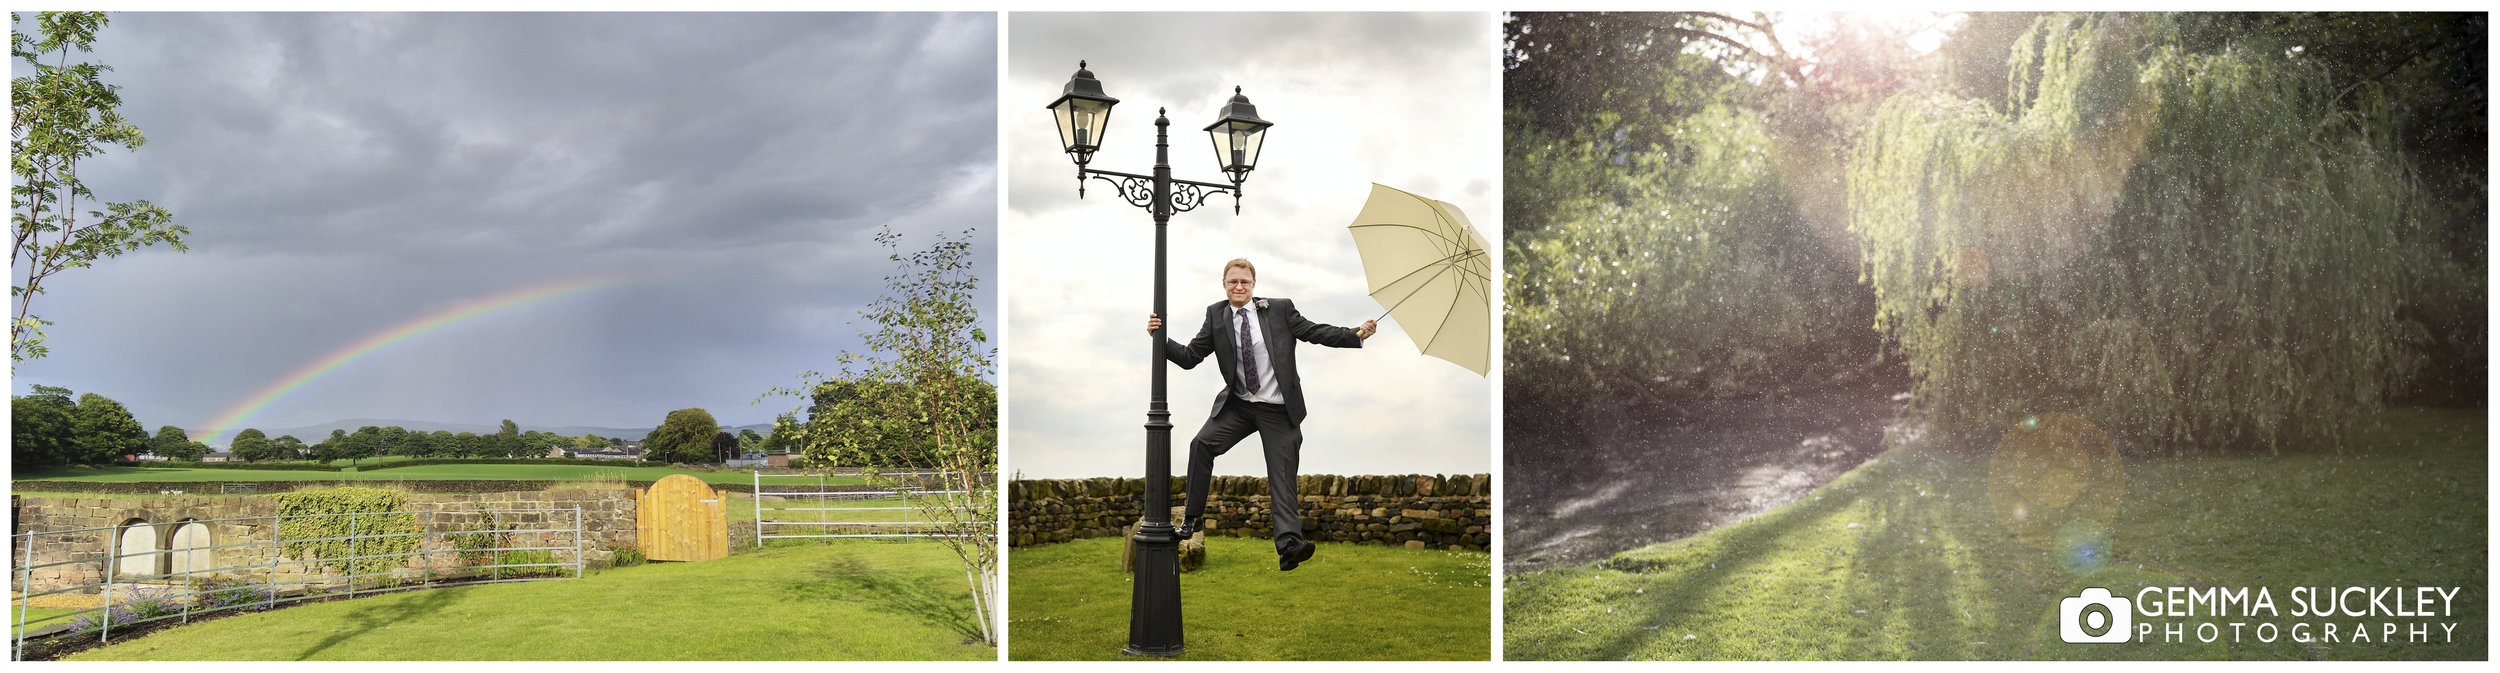 groom hanging off a lamp post with a umbrella in the rain